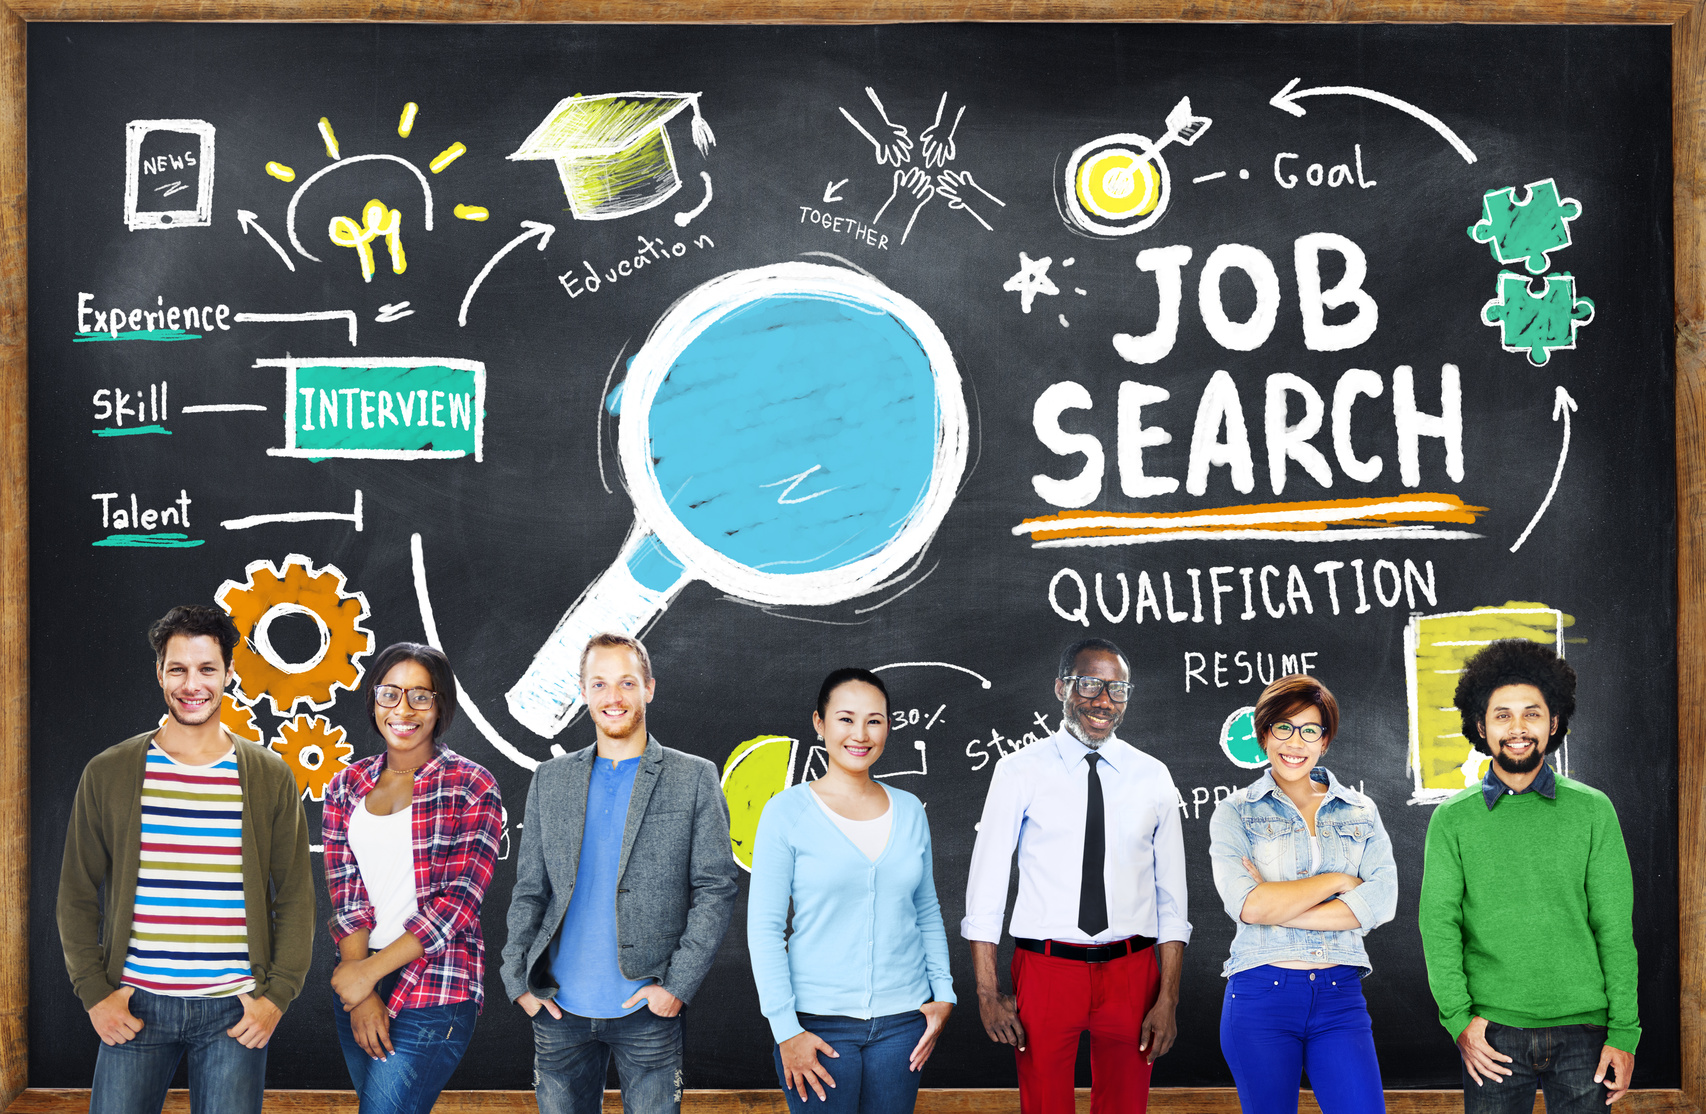 3 Ways to conduct a successful job search